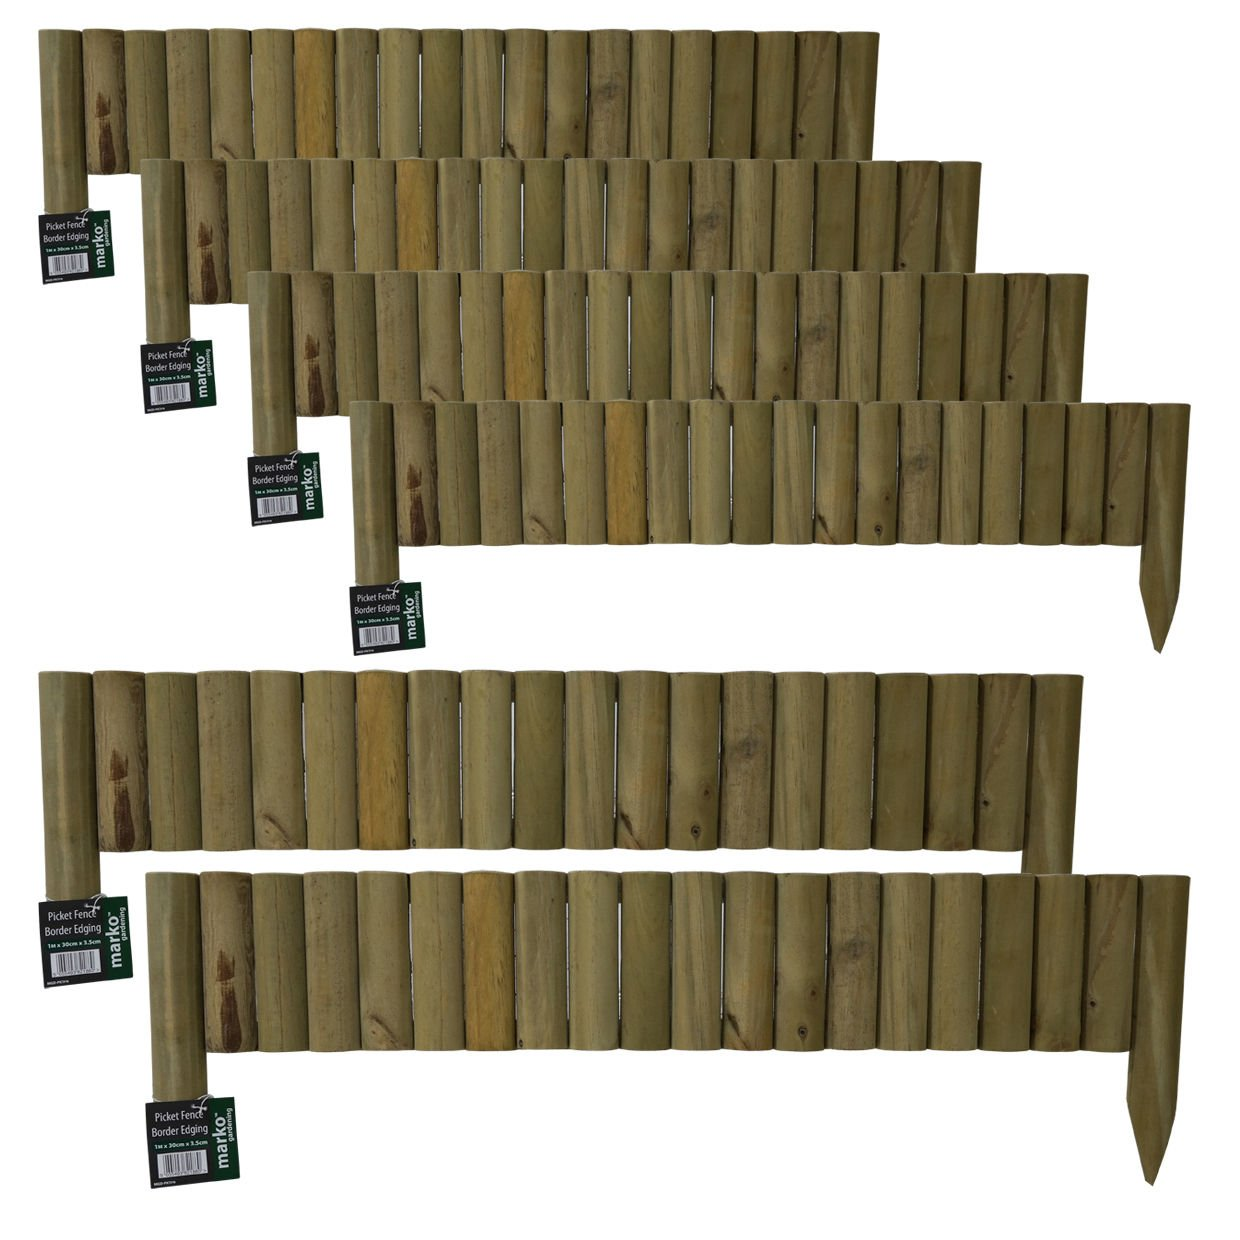 6x 1M Log Roll Border Fixed Picket Fence Edge Garden Outdoor Lawn Edging Marko